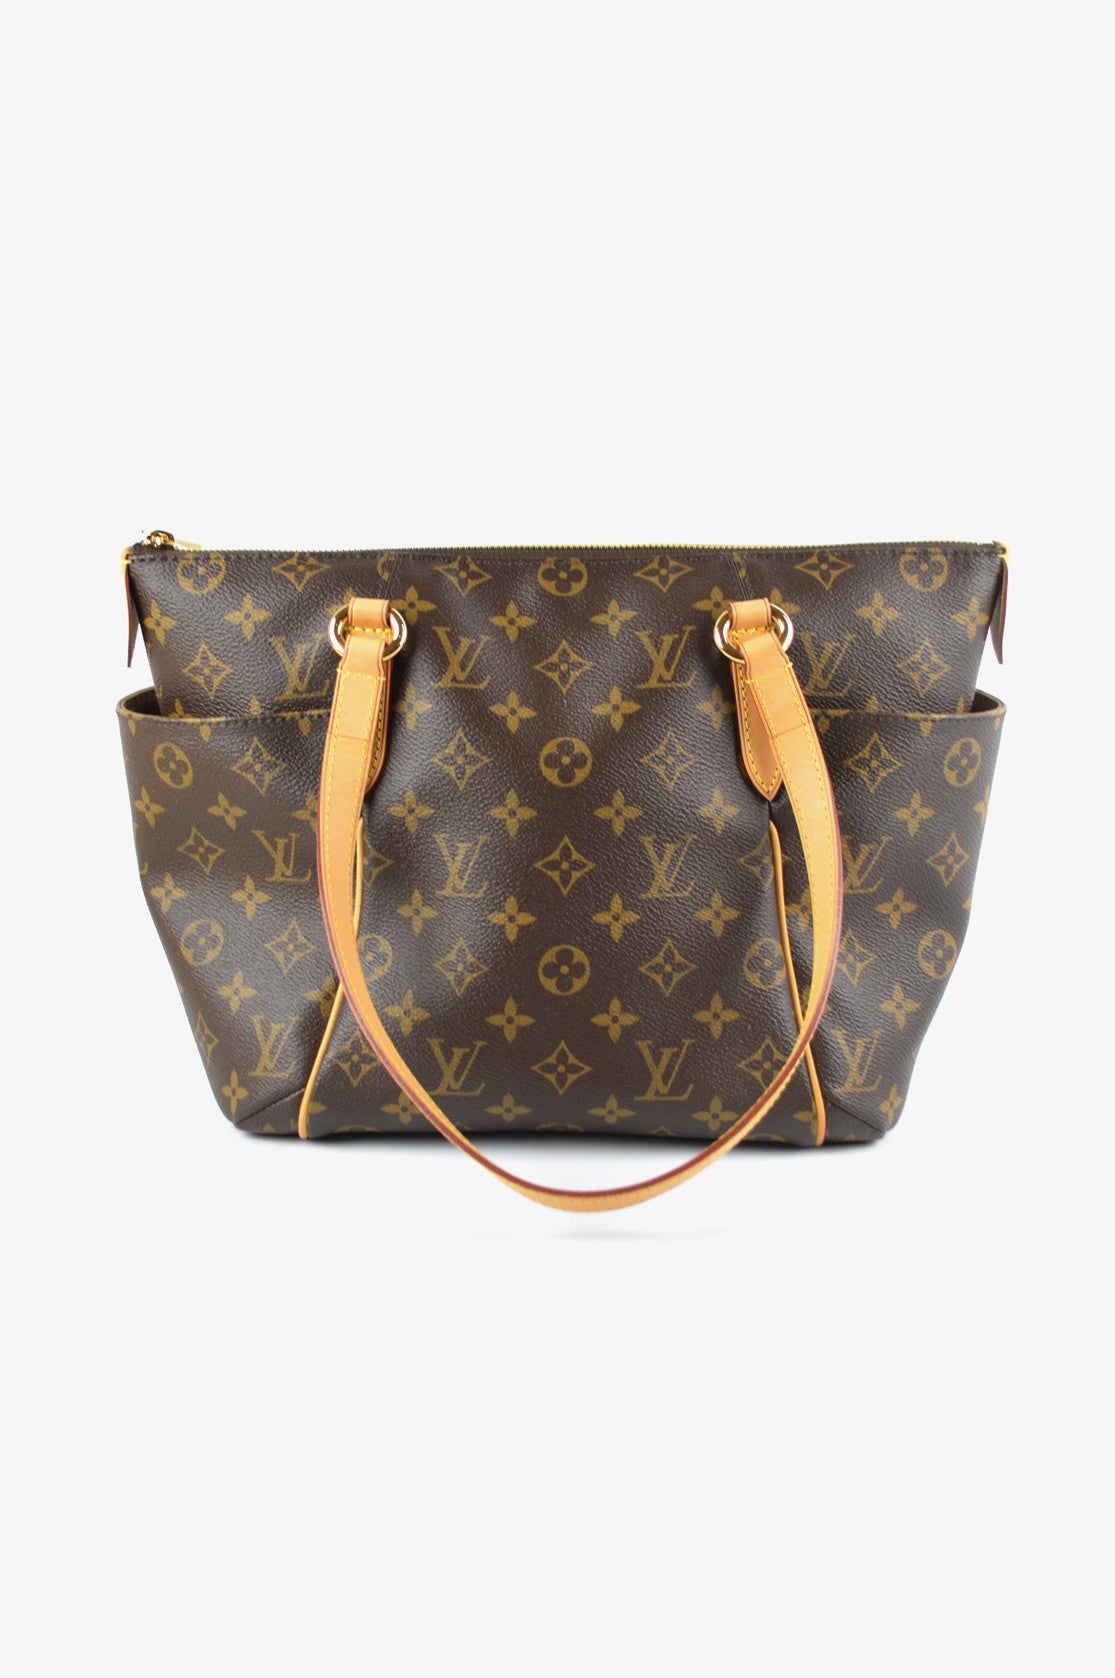 Monogram Canvas Totally PM Tote